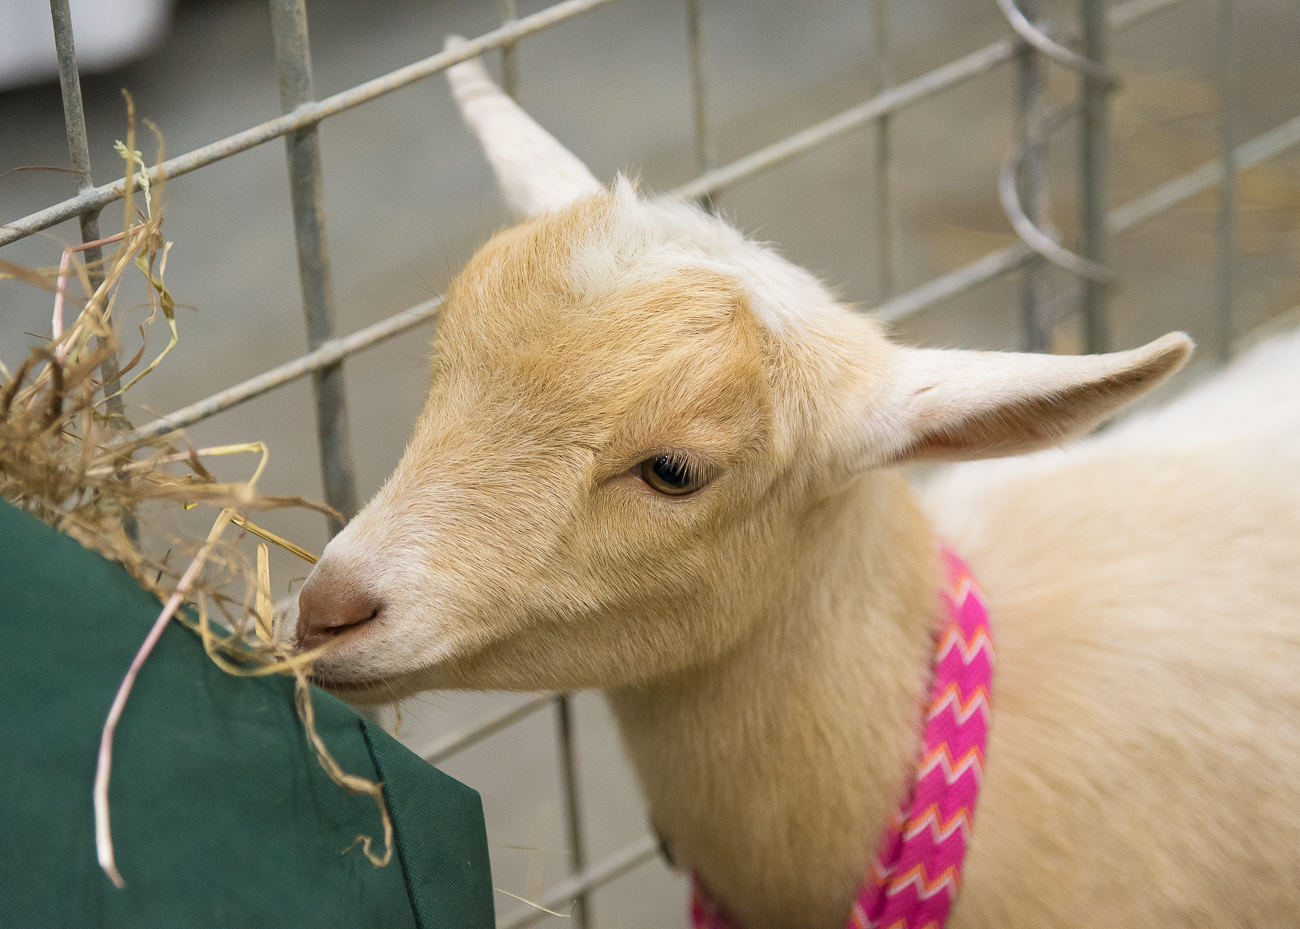 What Cincinnati event isn't complete without random baby goats in a pen? / Image: Phil Armstrong, Cincinnati Refined // Published: 11.3.18